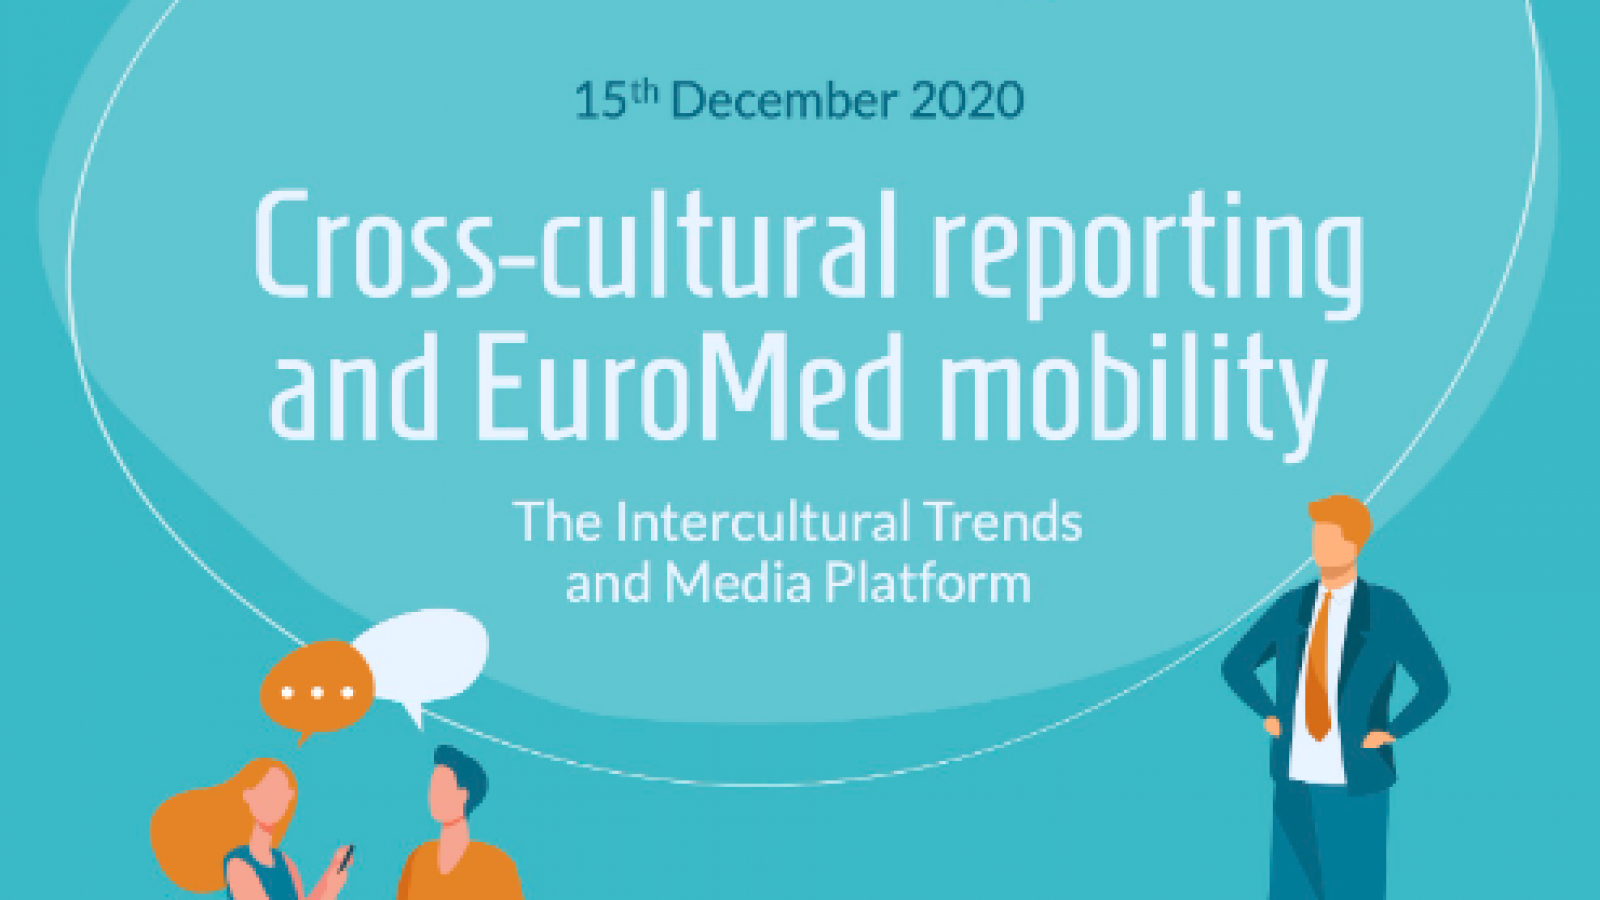 Anna Lindh Foundation platform to reflect on cross-cultural reporting and Euromed mobility